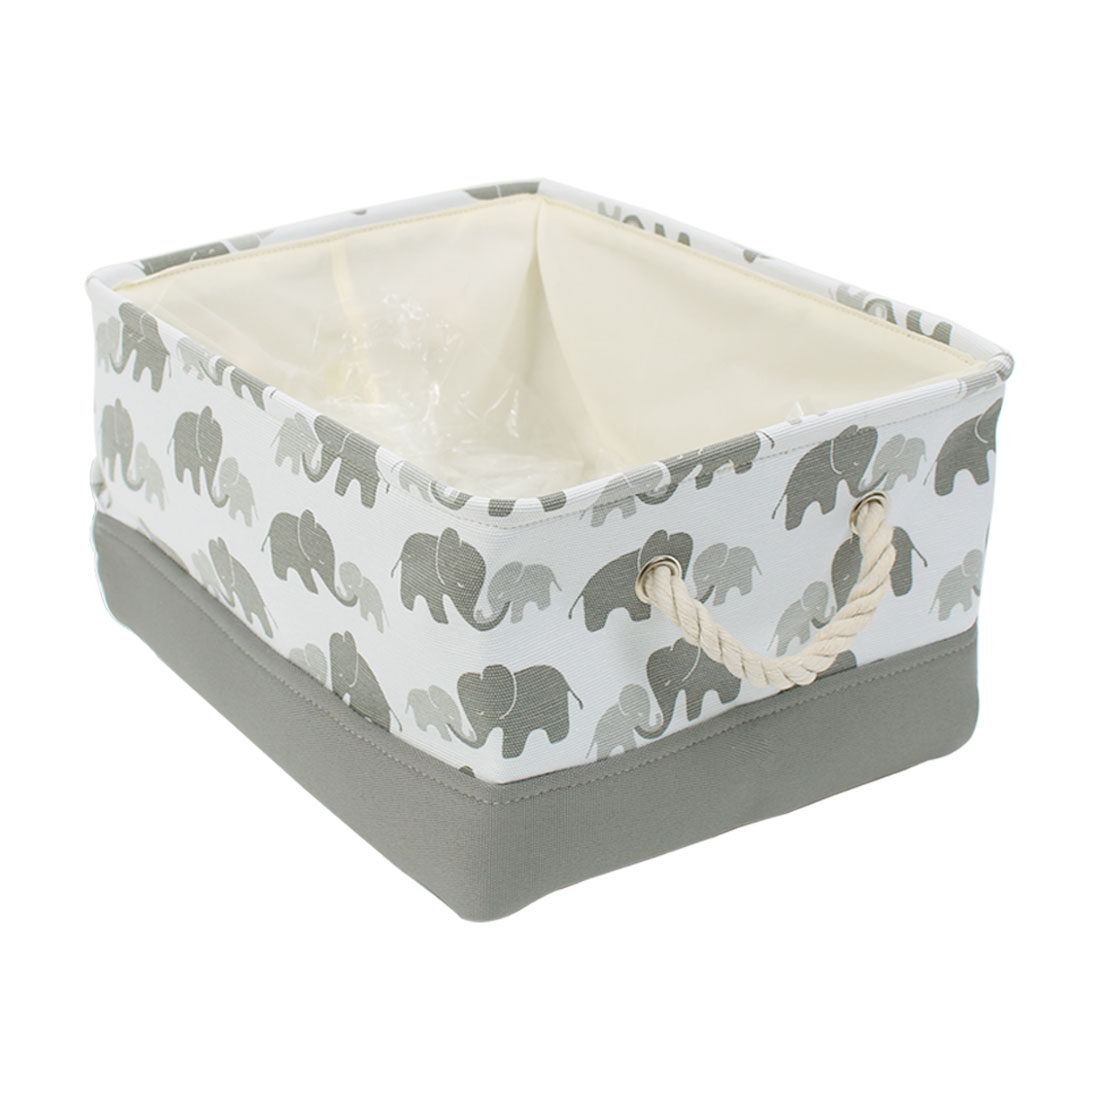 Foldable Canvas Fabric Storage Basket Bin w Handles Drawstring Cover